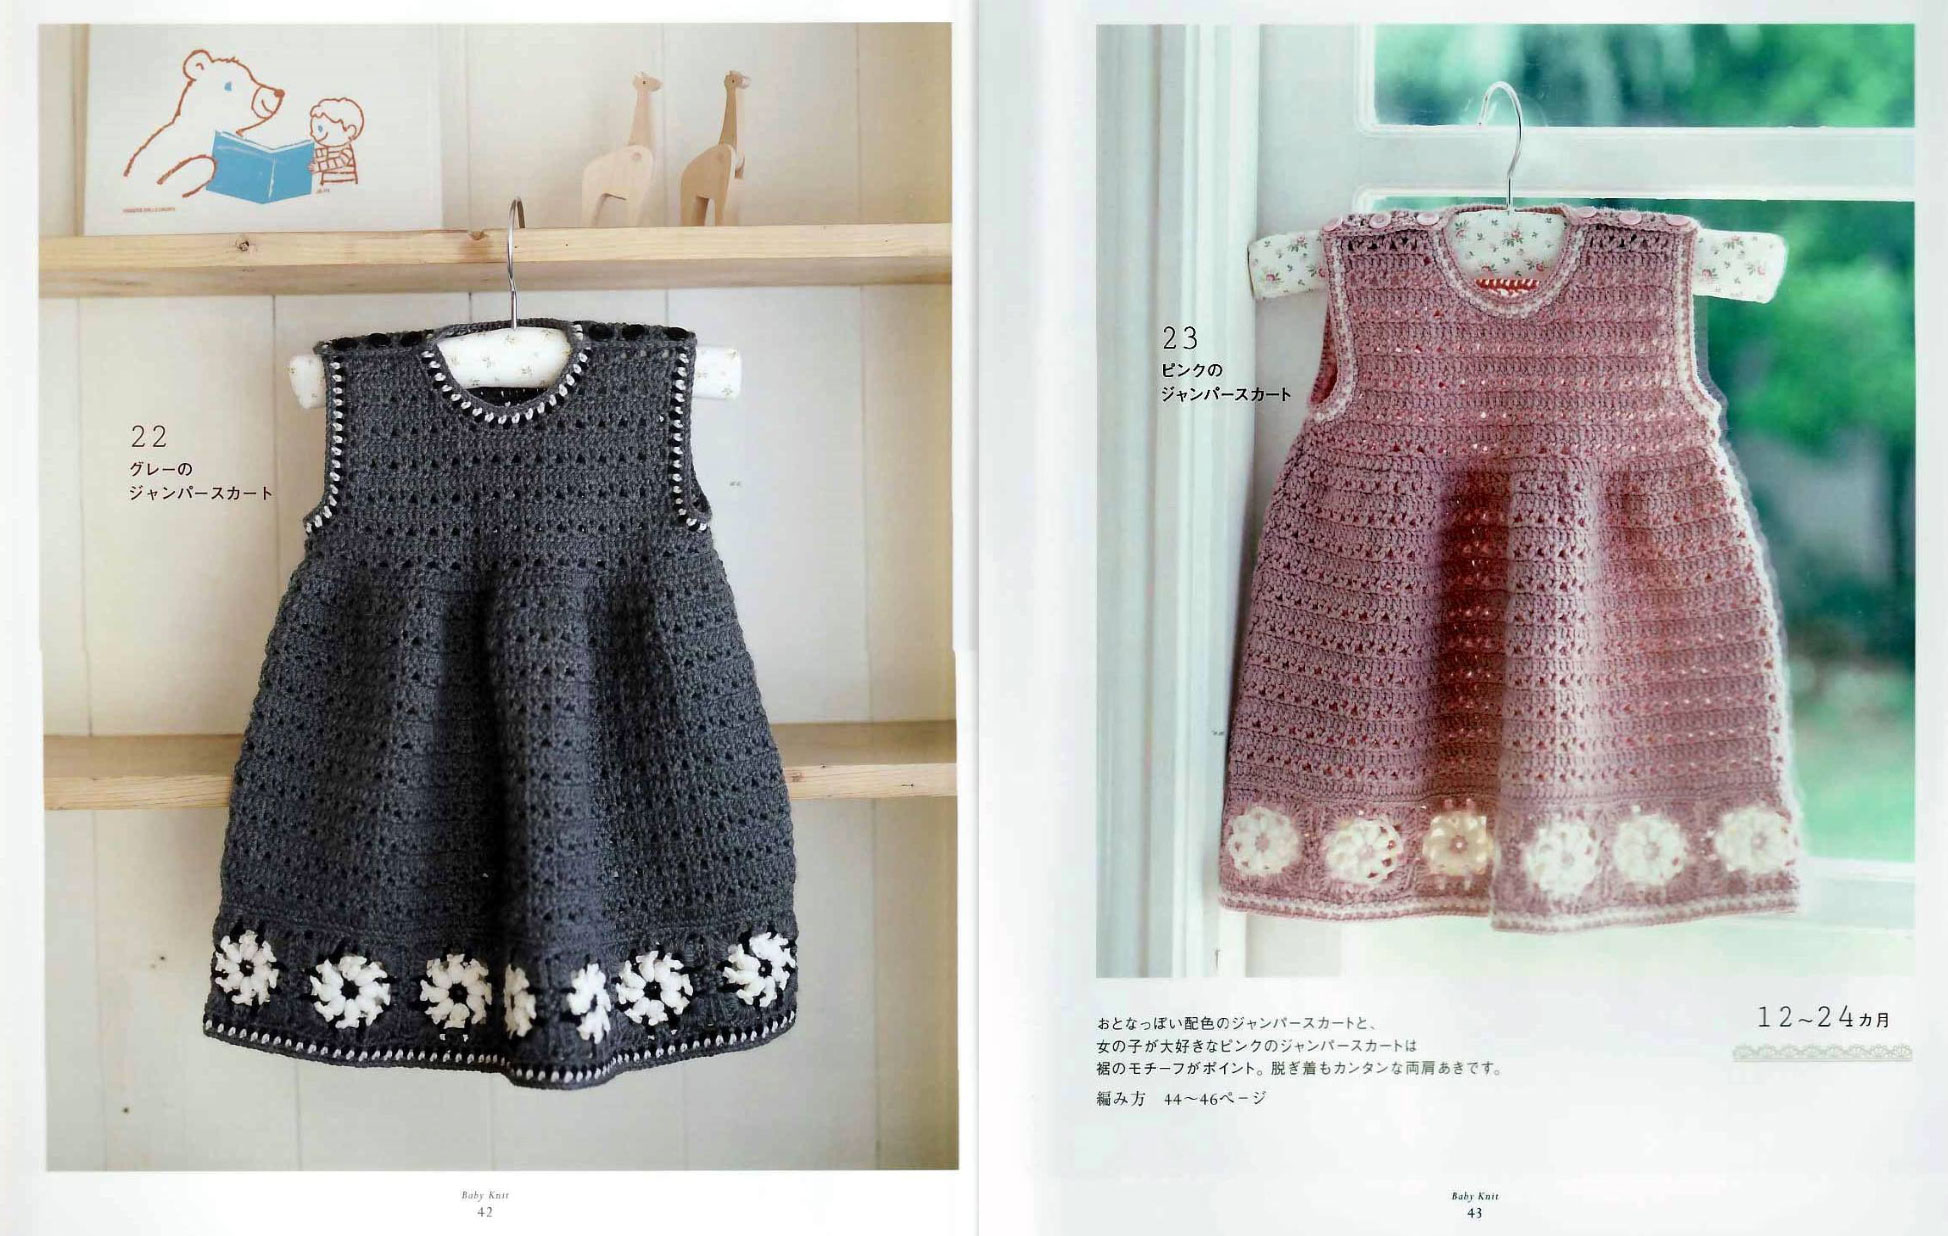 Japanese Crochet Baby Dress Pattern : Cute Japanese Baby Crochet Dress Pattern ? Crochet Kingdom